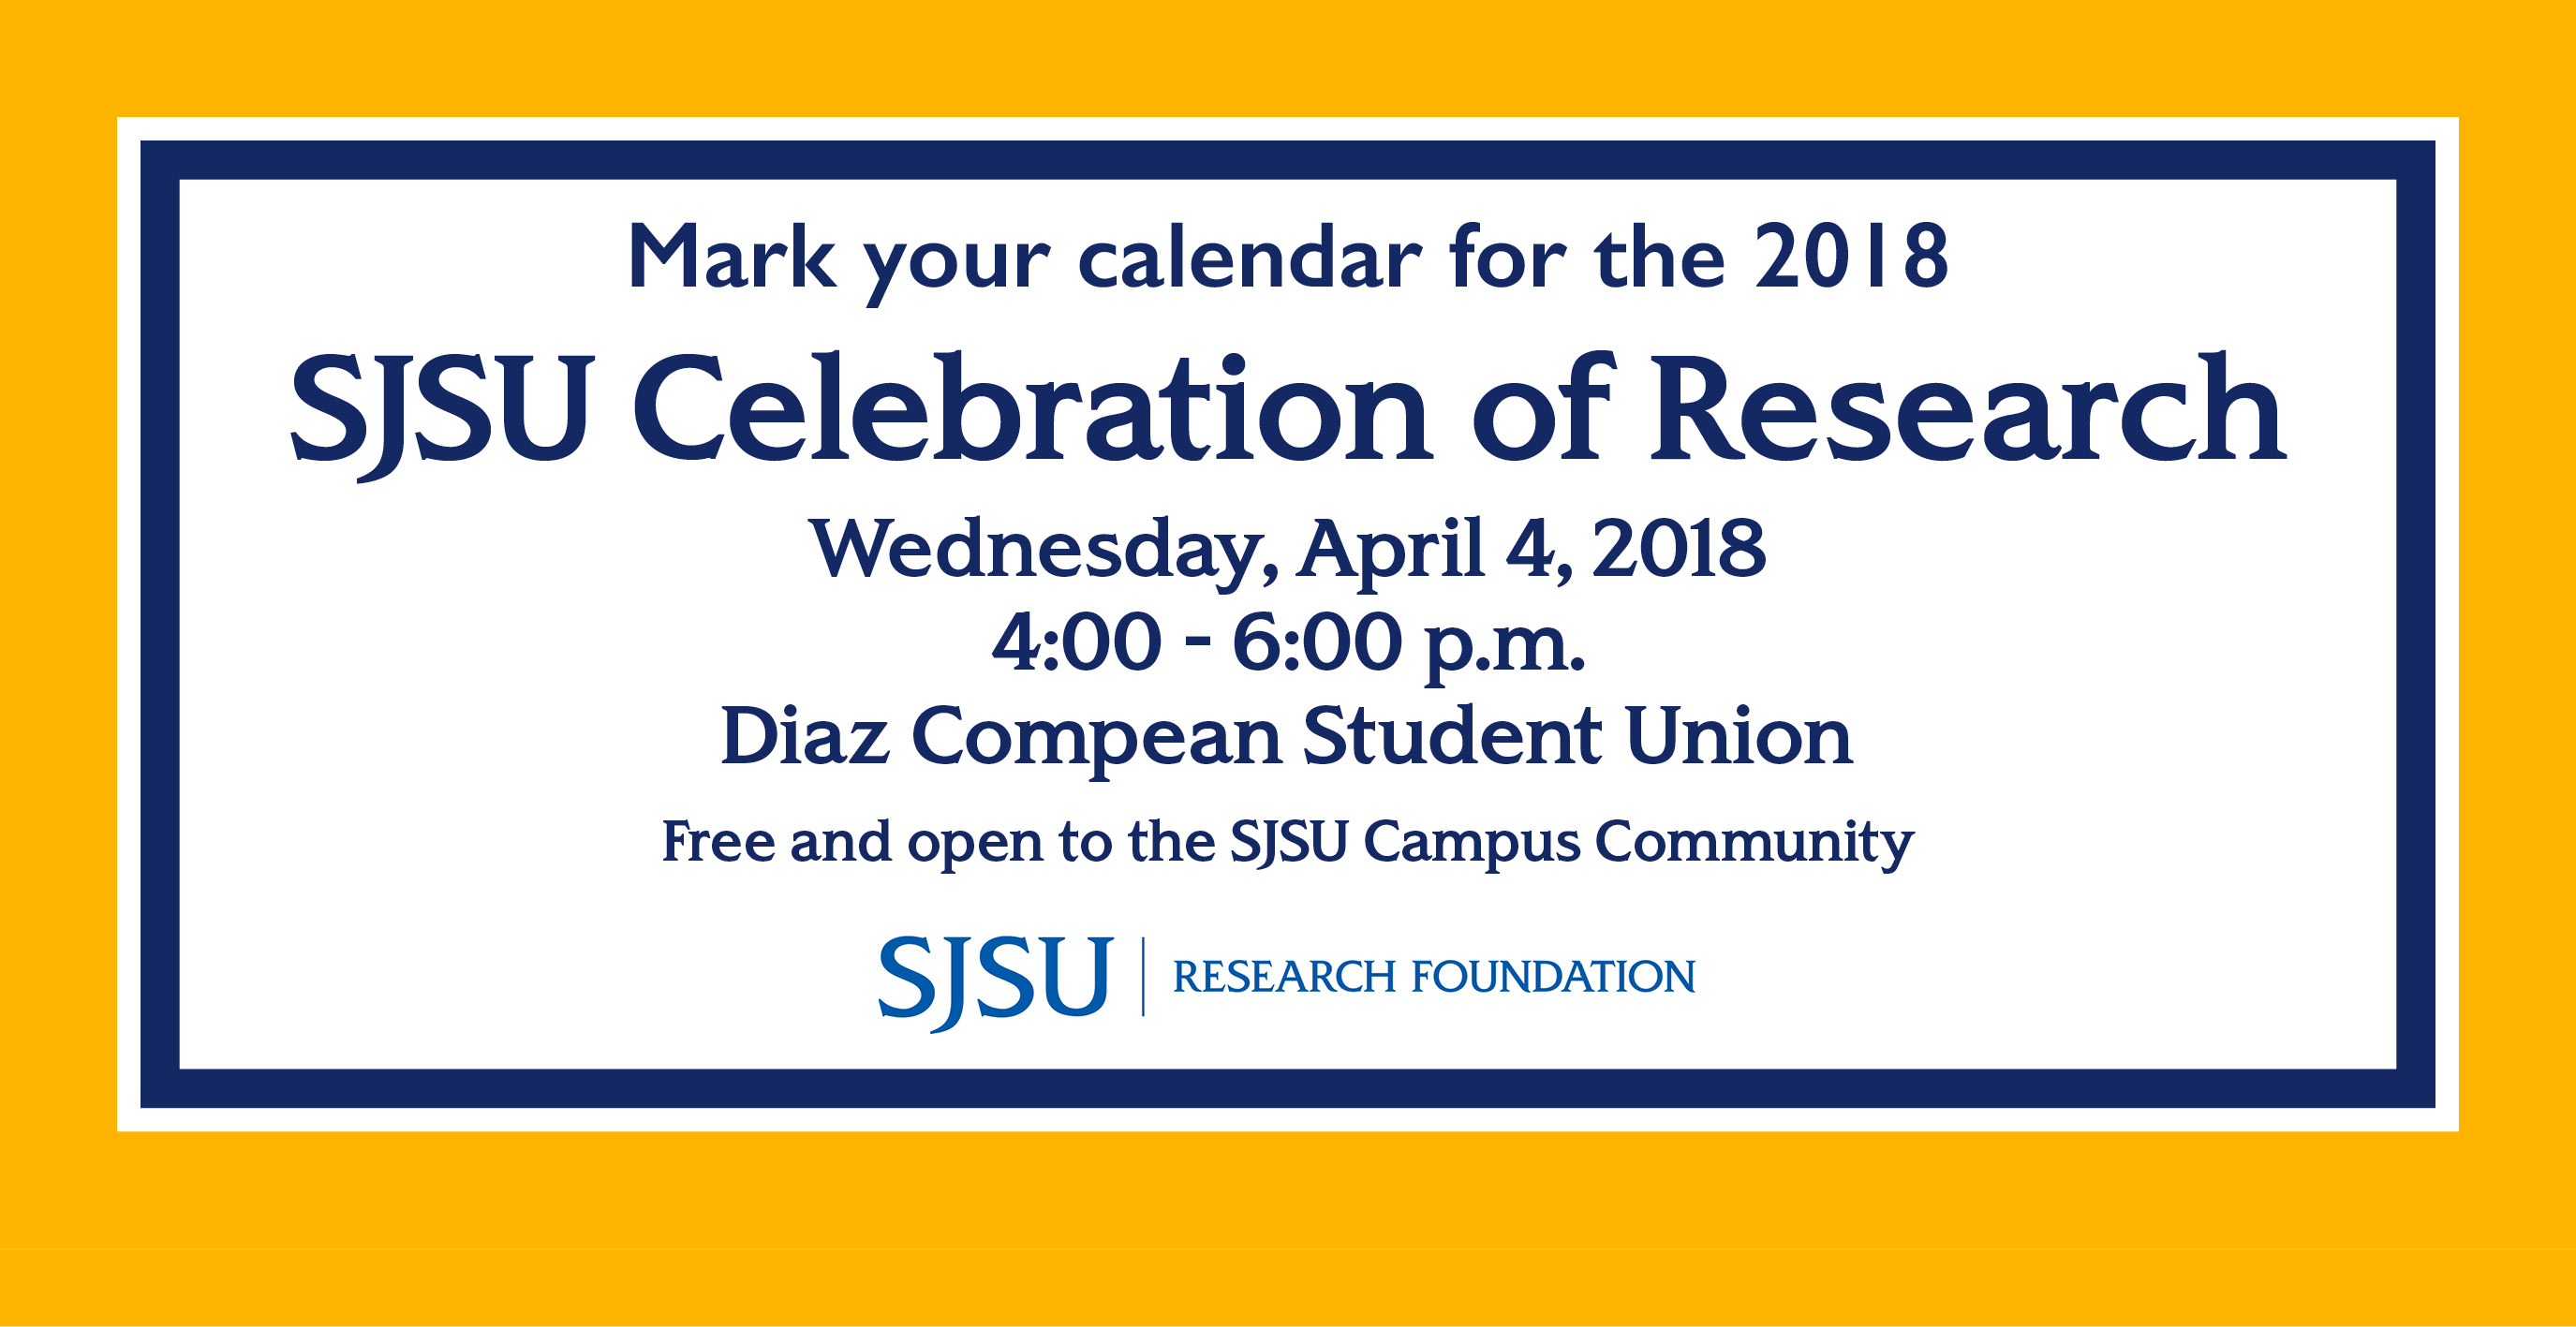 SJSU Celebration of Research